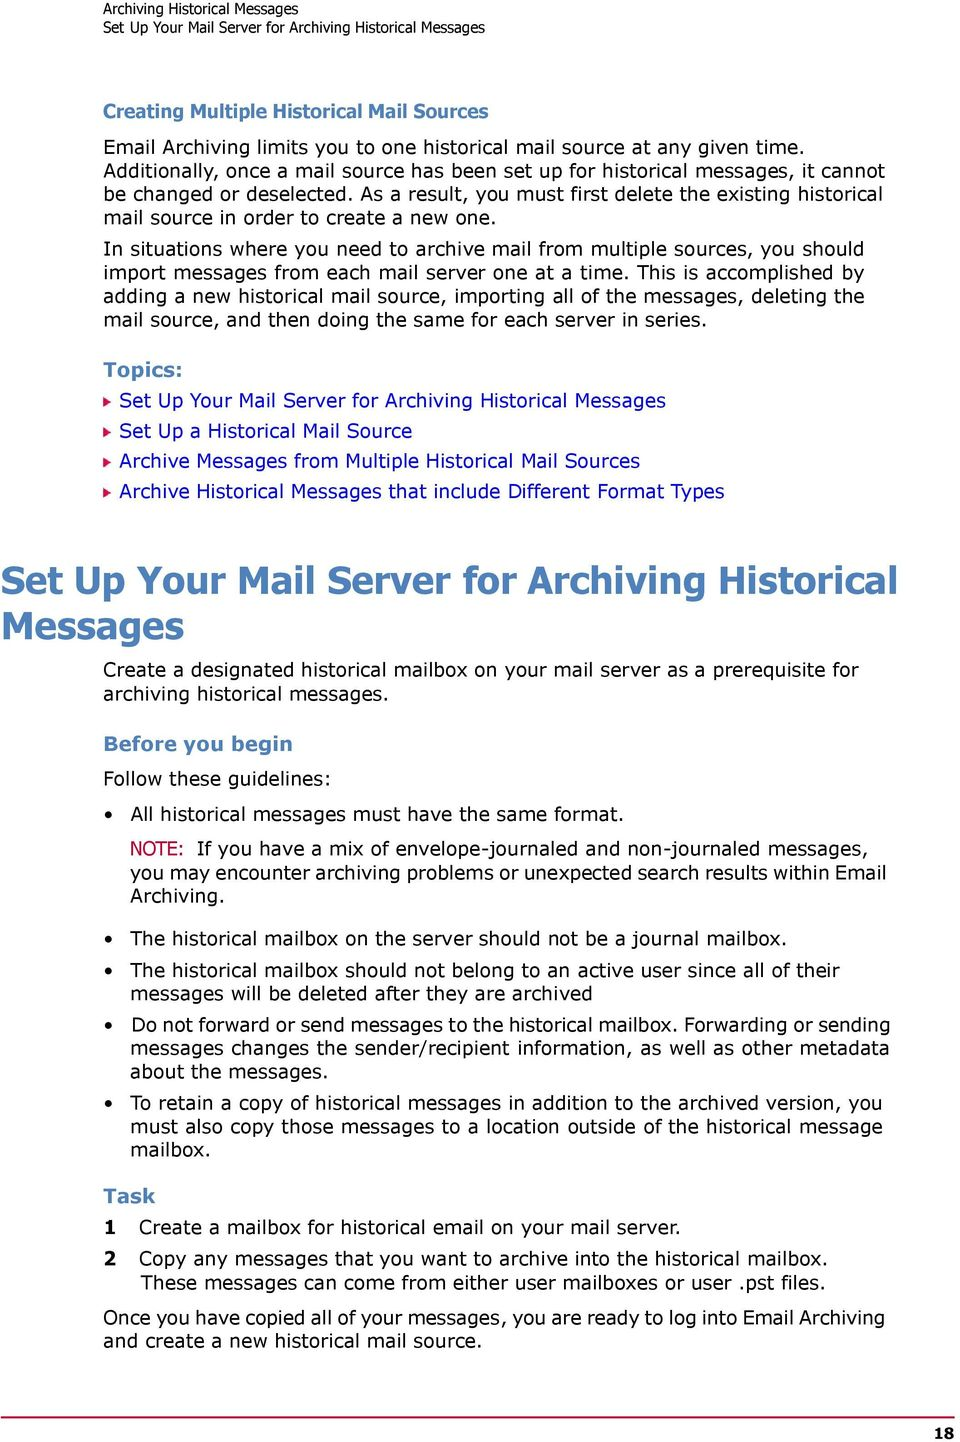 As a result, you must first delete the existing historical mail source in order to create a new one.